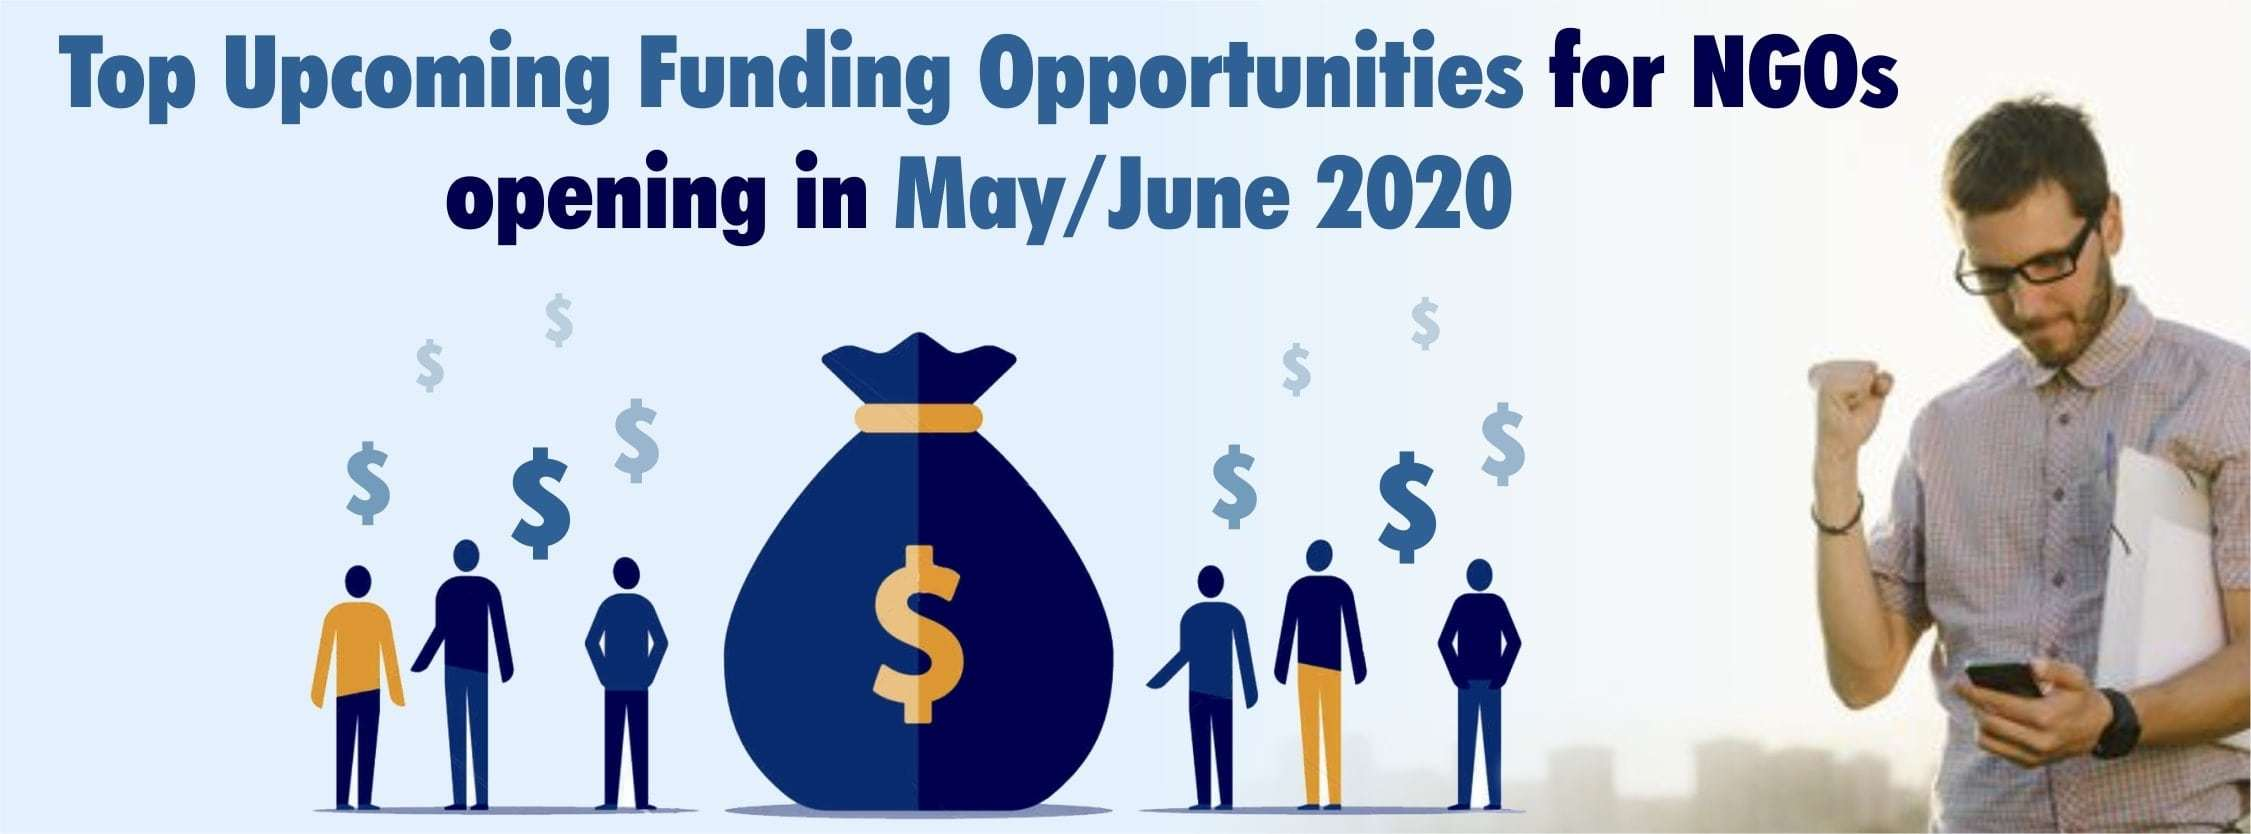 Top Upcoming Funding Opportunities for NGOs opening in May/June 2020